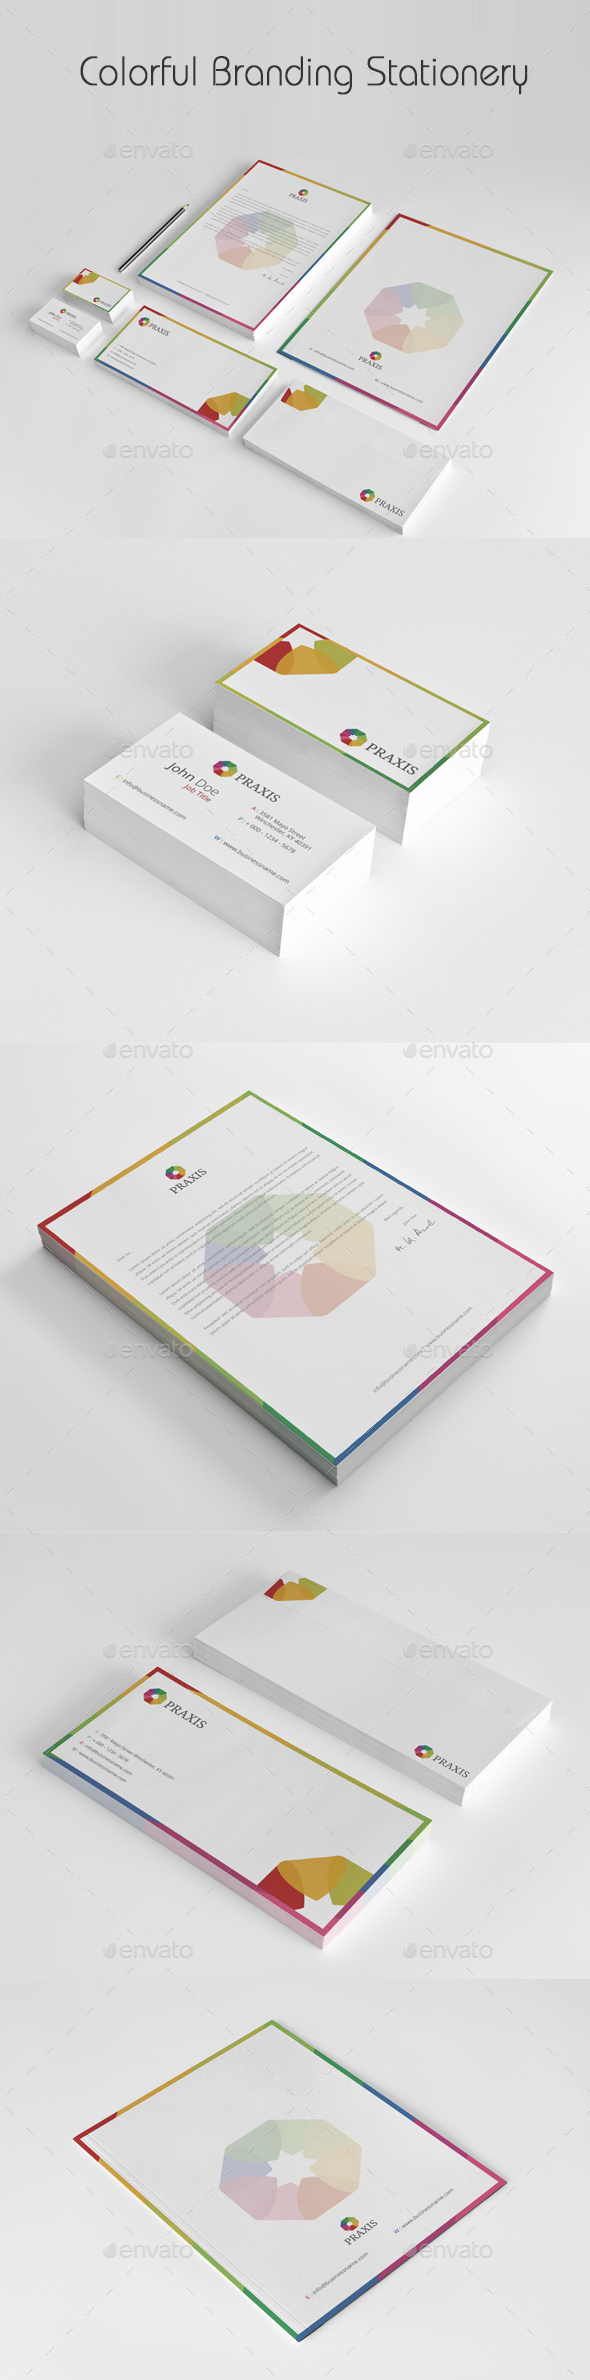 Colorful Branding Stationery - Stationery Print Templates